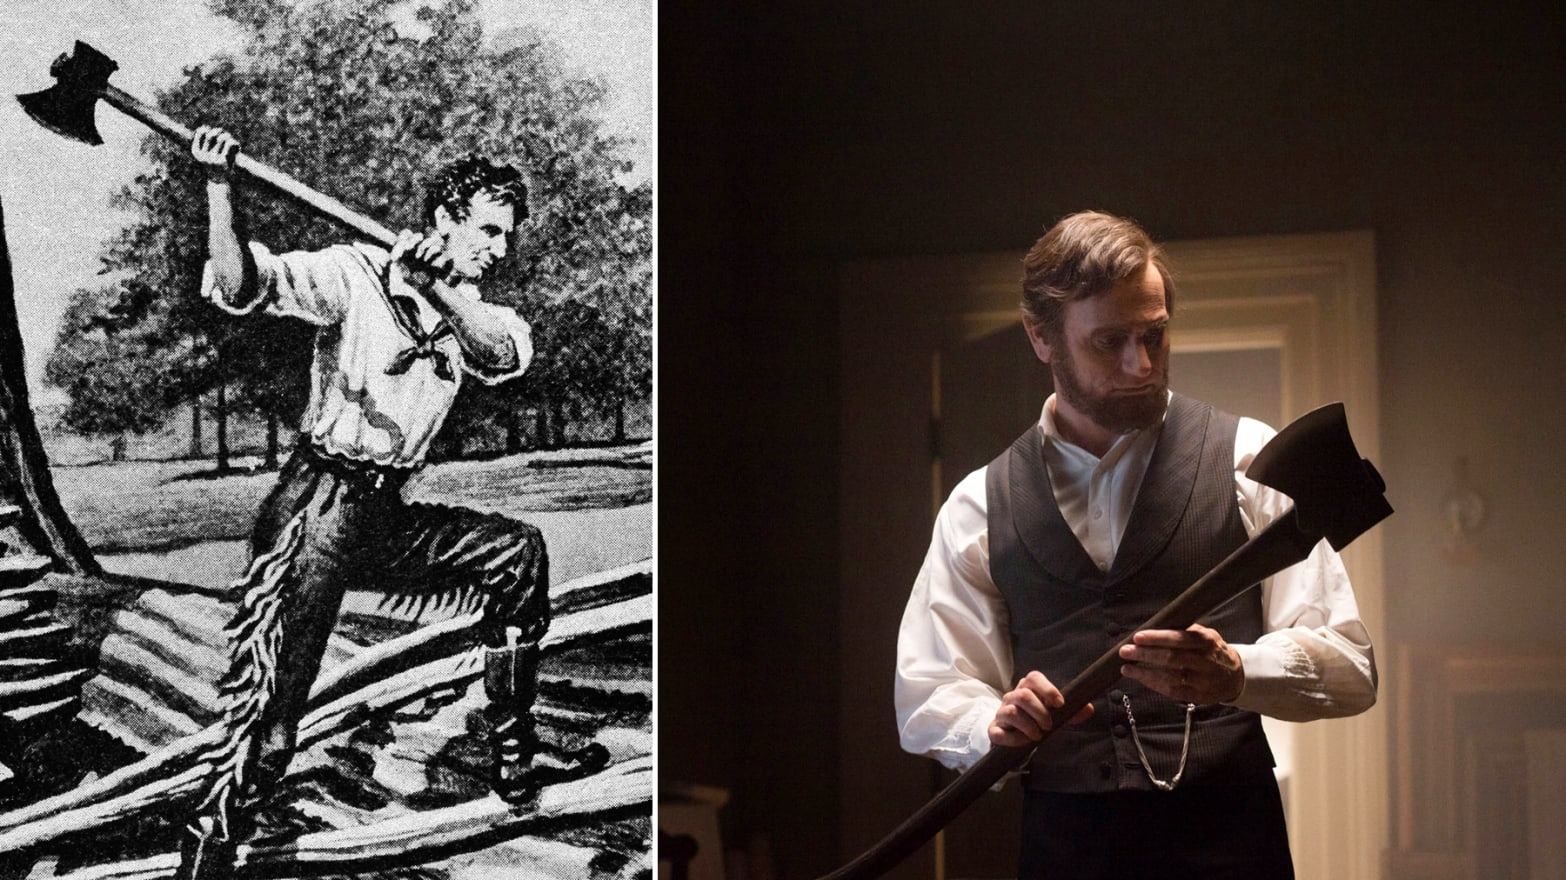 Abe lincoln swinging an axe galleries 794